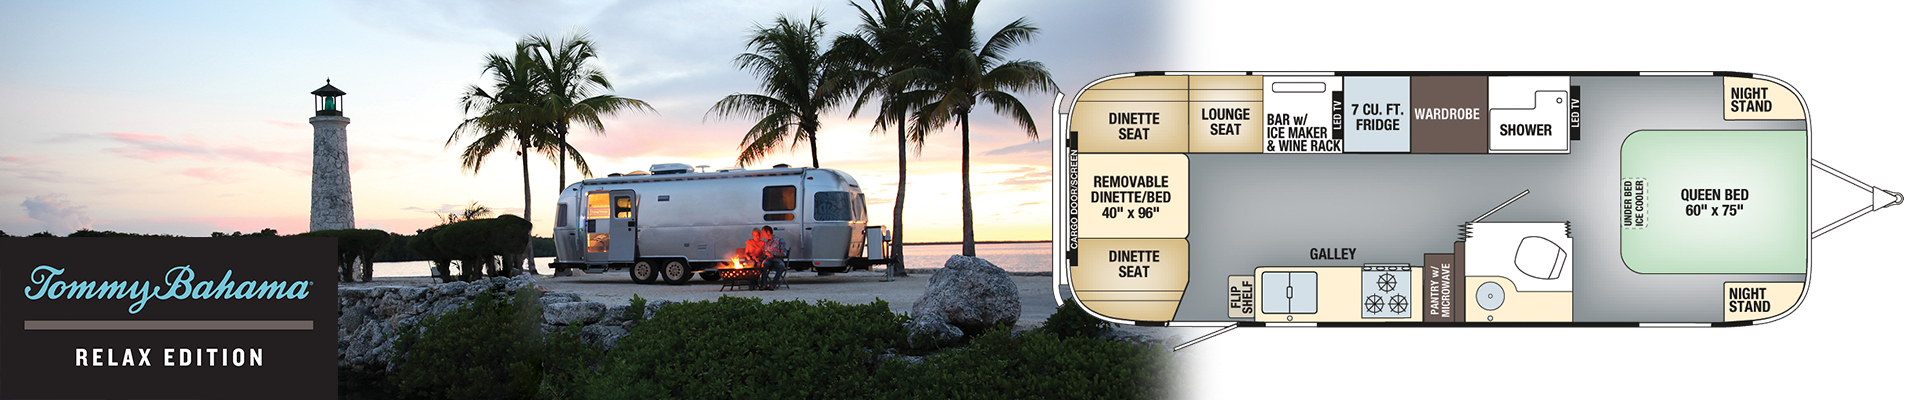 Airstream Tommy Bahama RV available at NationalRV Travel Trailer with floorplan